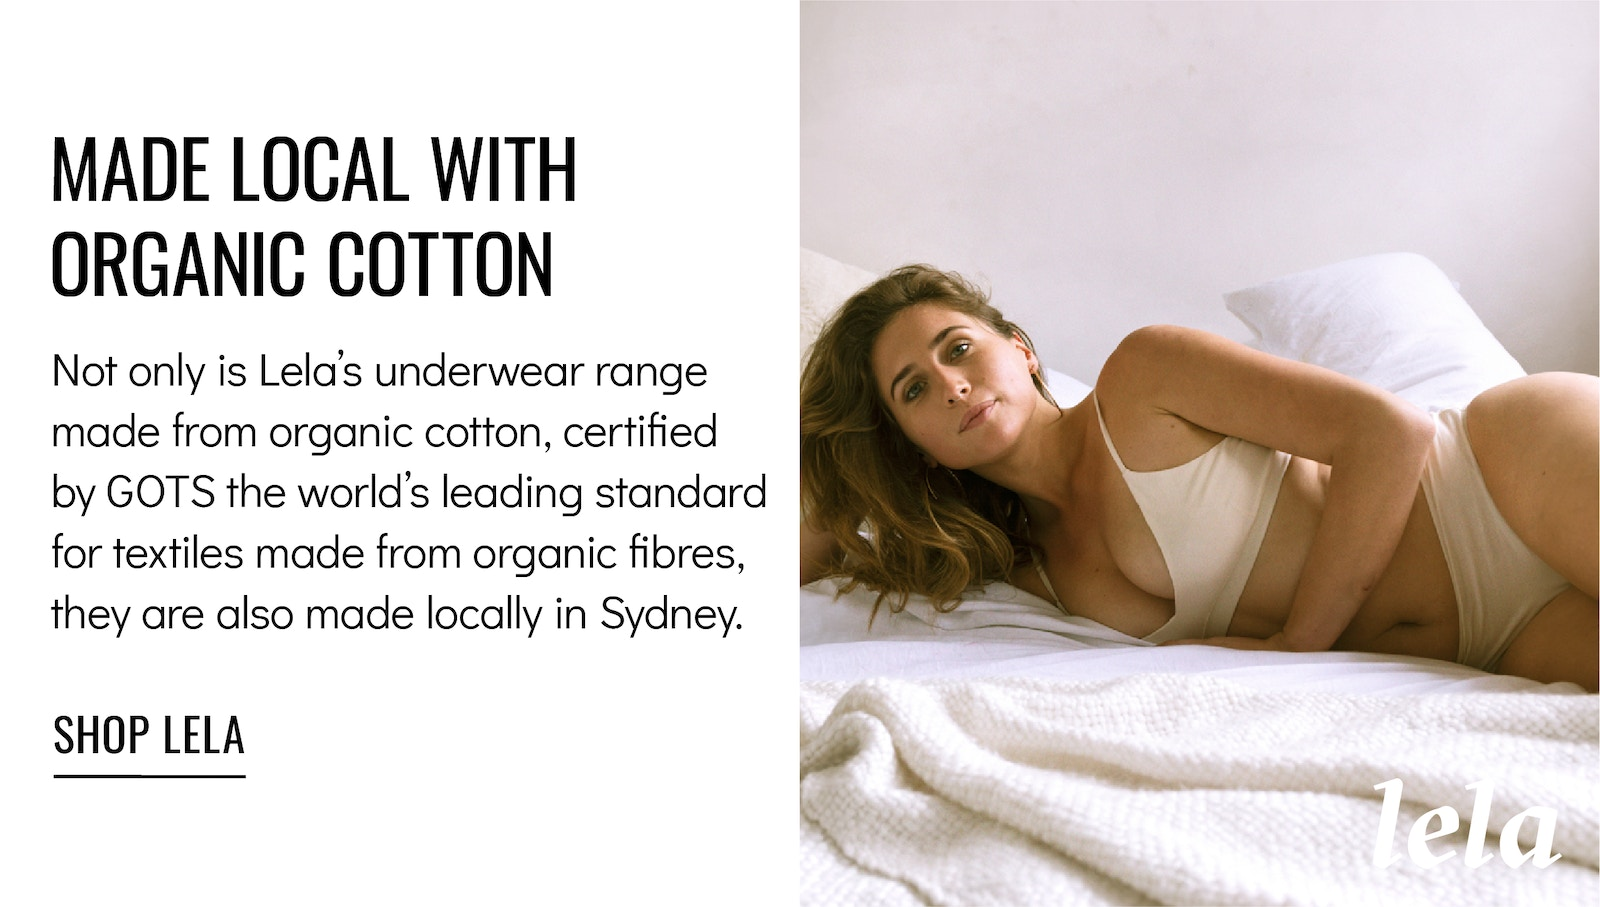 Lela Made Local with Organic Cotton